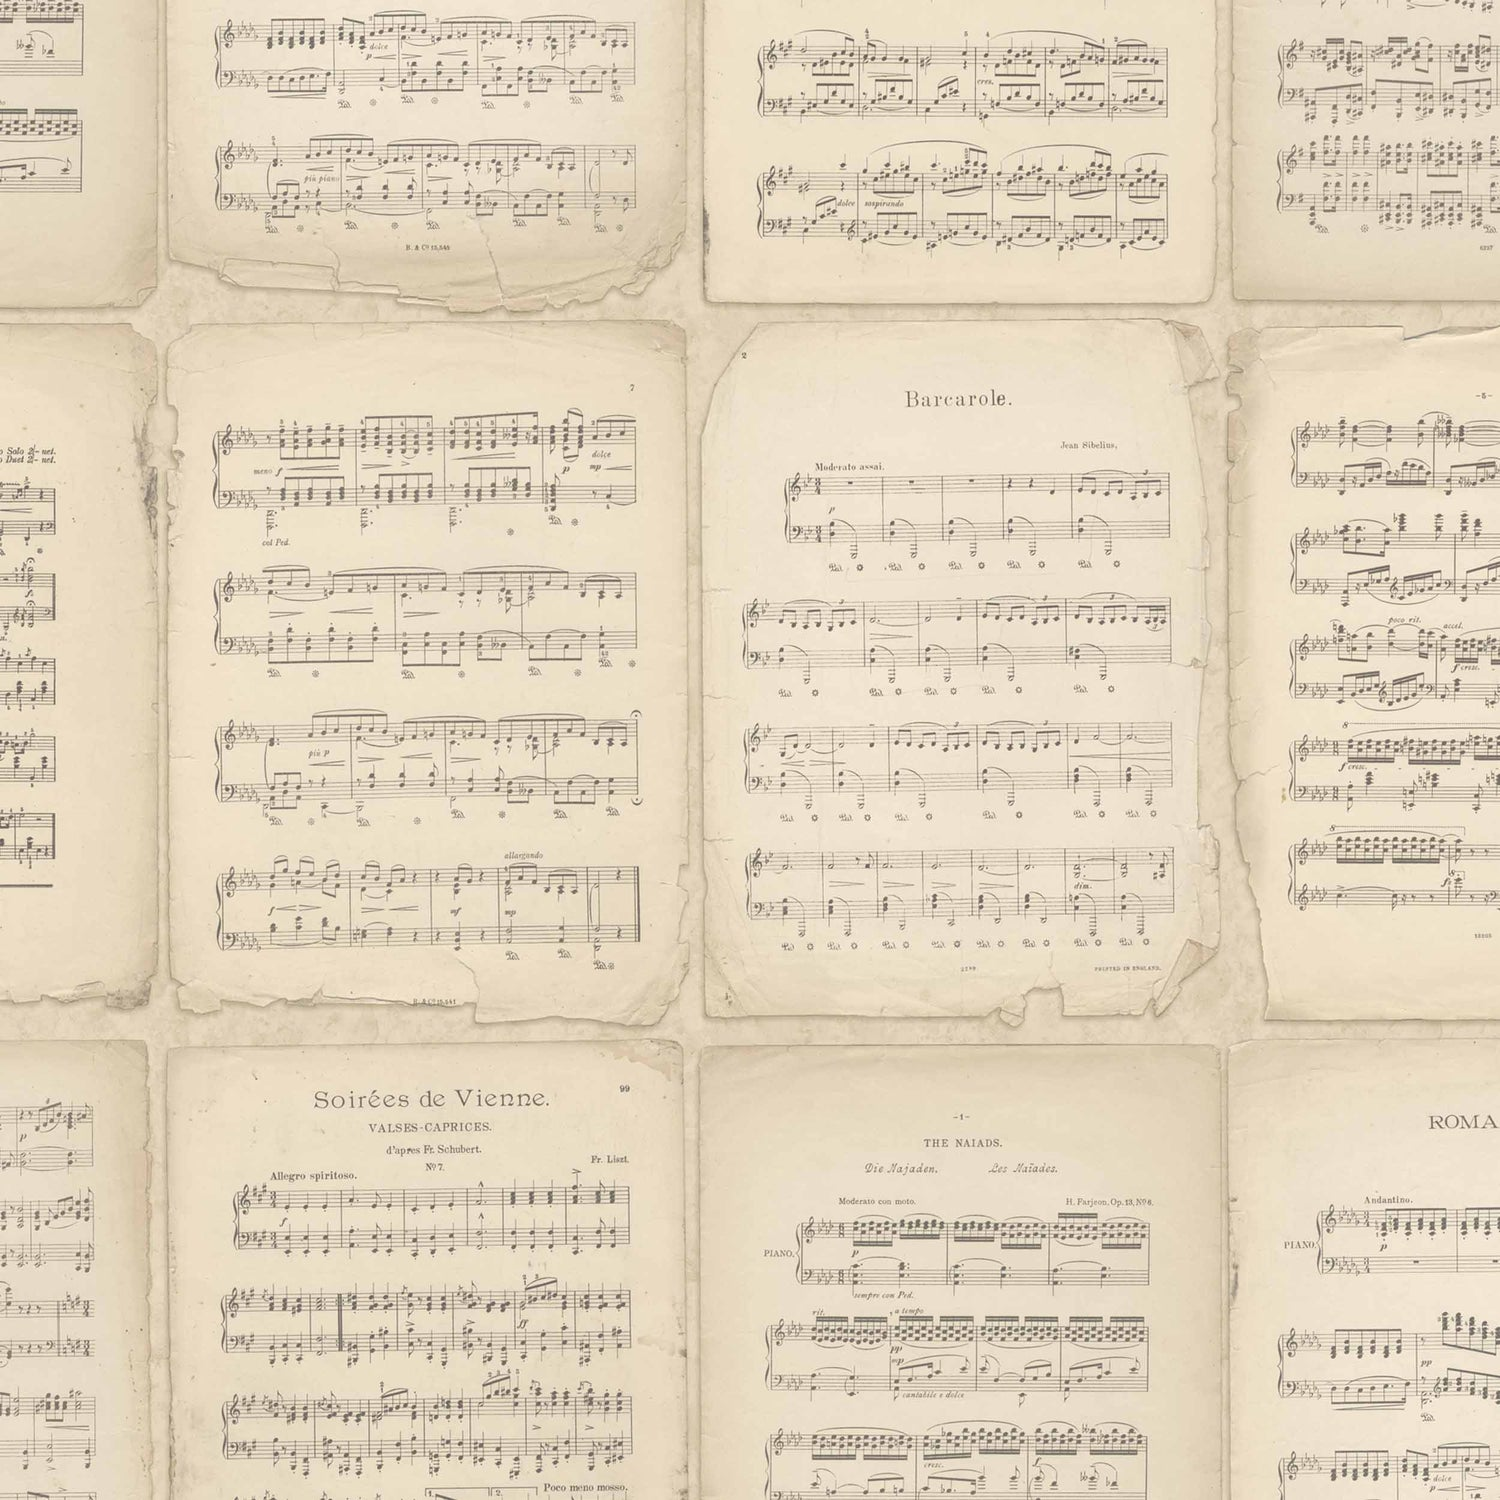 Vintage Music Score by Argent & Ink